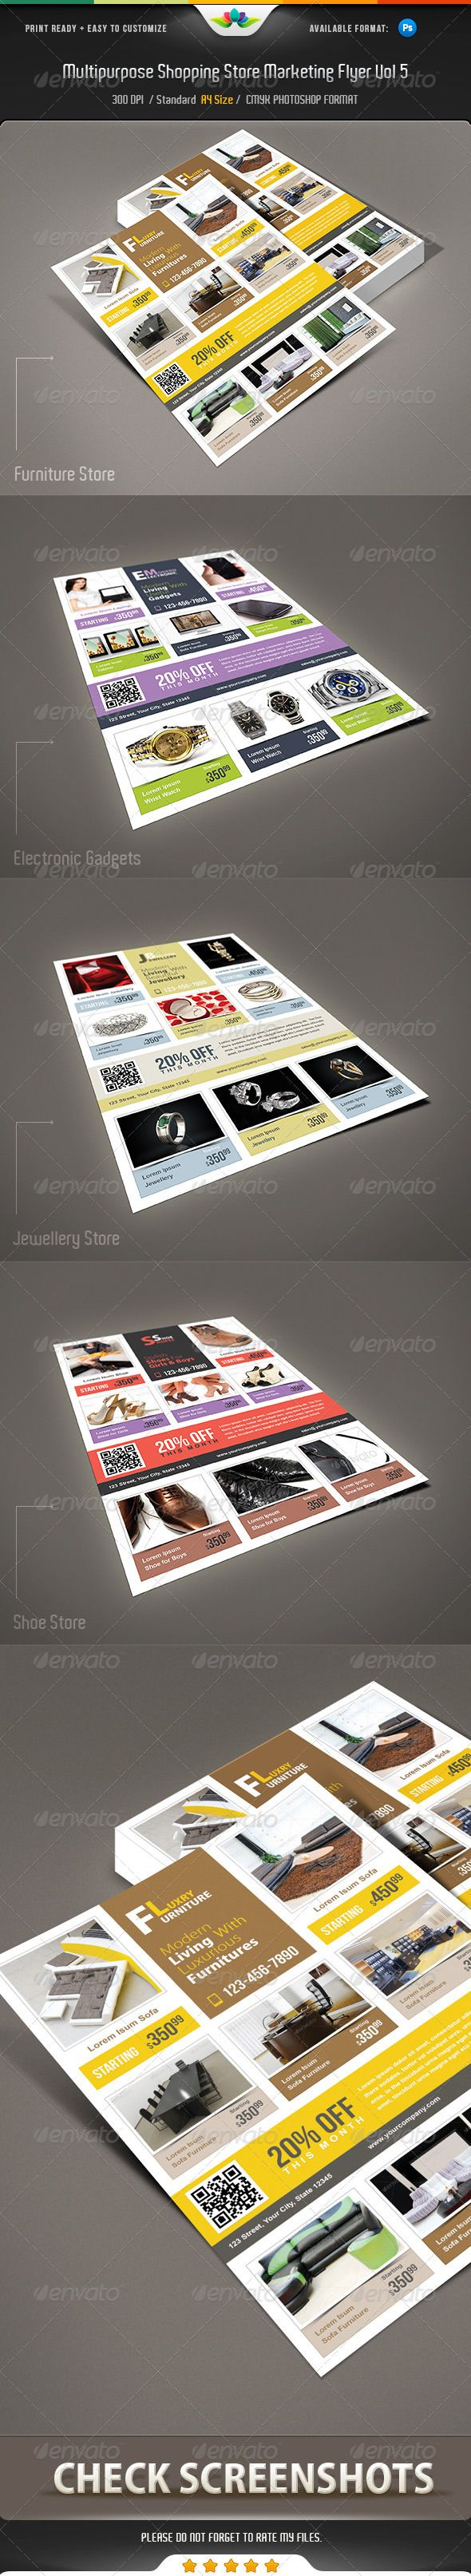 17 best images about marketing flyer multipurpose shopping store marketing flyer vol 5